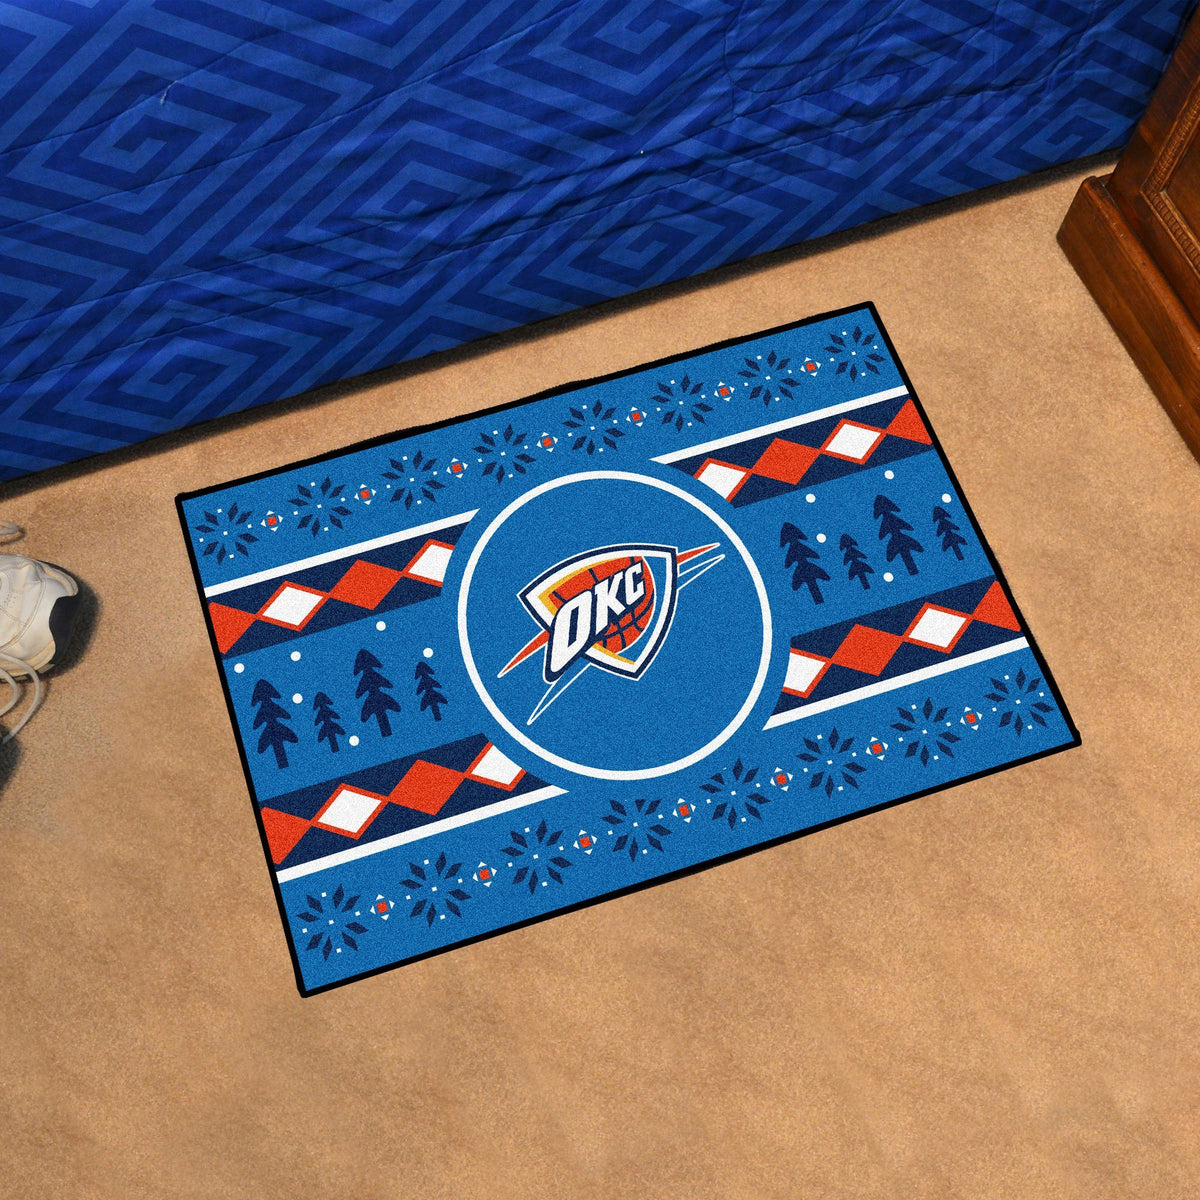 NBA - Holiday Sweater Starter Mat NBA Mats, Rectangular Mats, Holiday Sweater Starter Mat, NBA, Home Fan Mats Oklahoma City Thunder